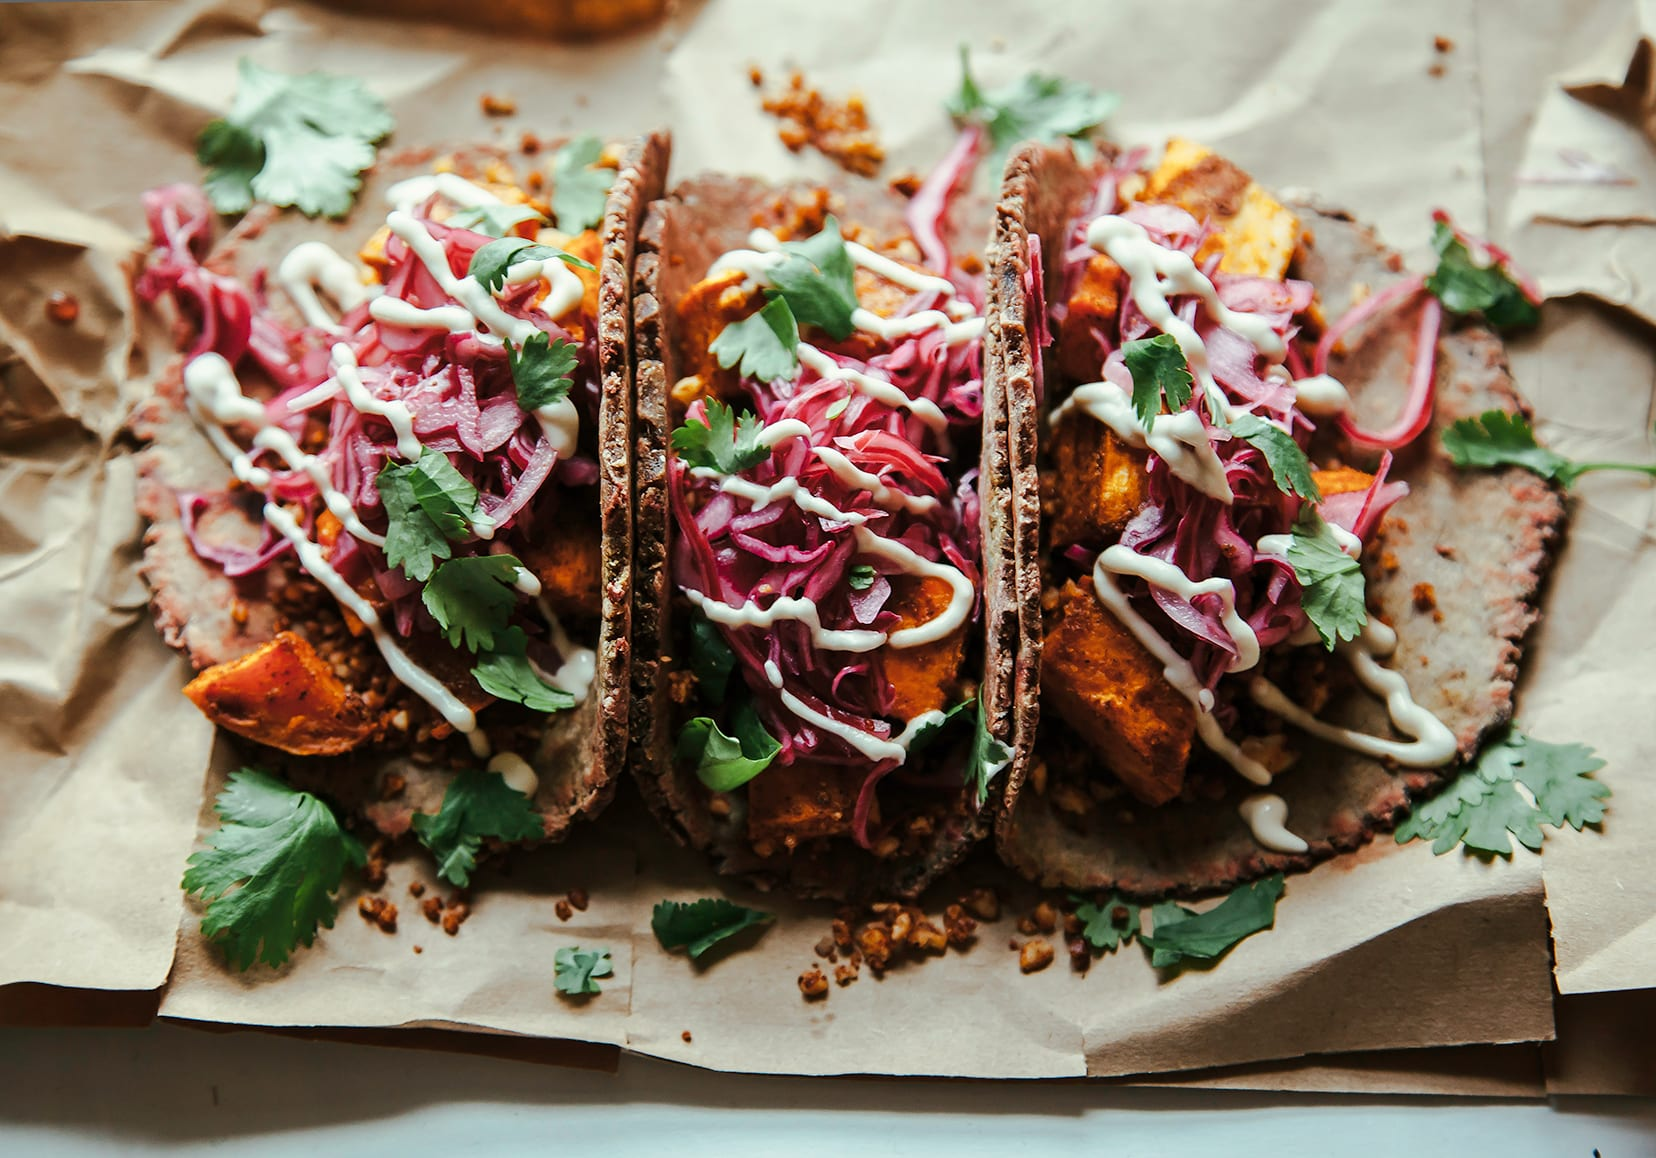 SWEET POTATO PECAN TACOS WITH QUICK PICKLED CABBAGE & CASHEW SOUR CREAM - The First Mess